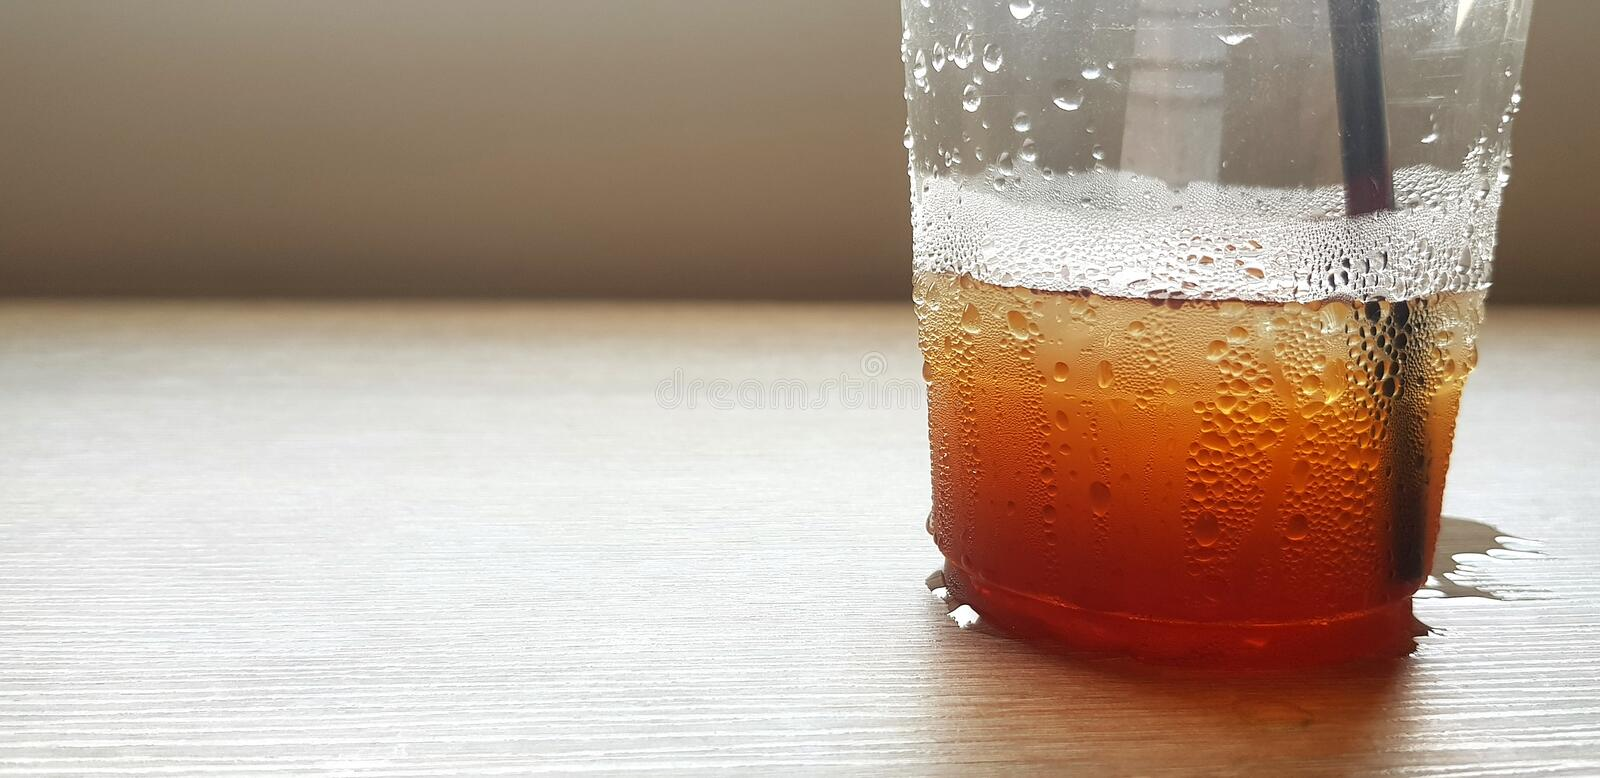 Close up plastic glass of water, iced coffee, coke or cola and straw putting on wooden table  with copy space. Refreshment, Cold, Thirsty, Drinking, Object stock photography